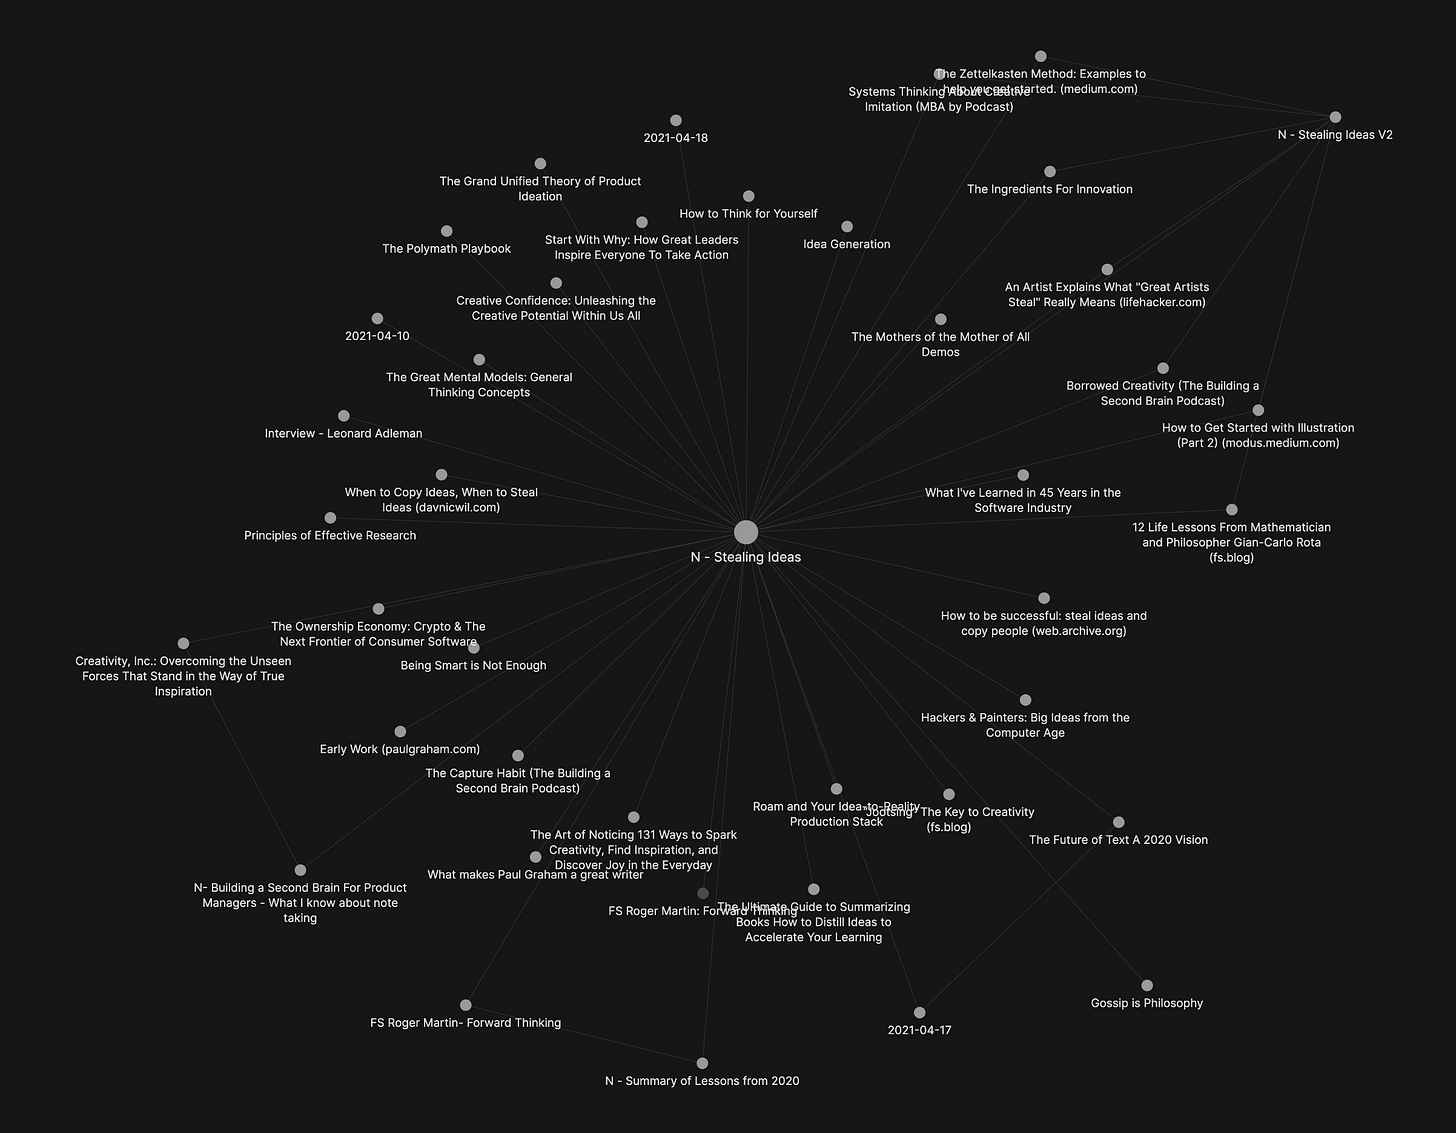 A networked map of connected notes representing the different sources and influences for this article.